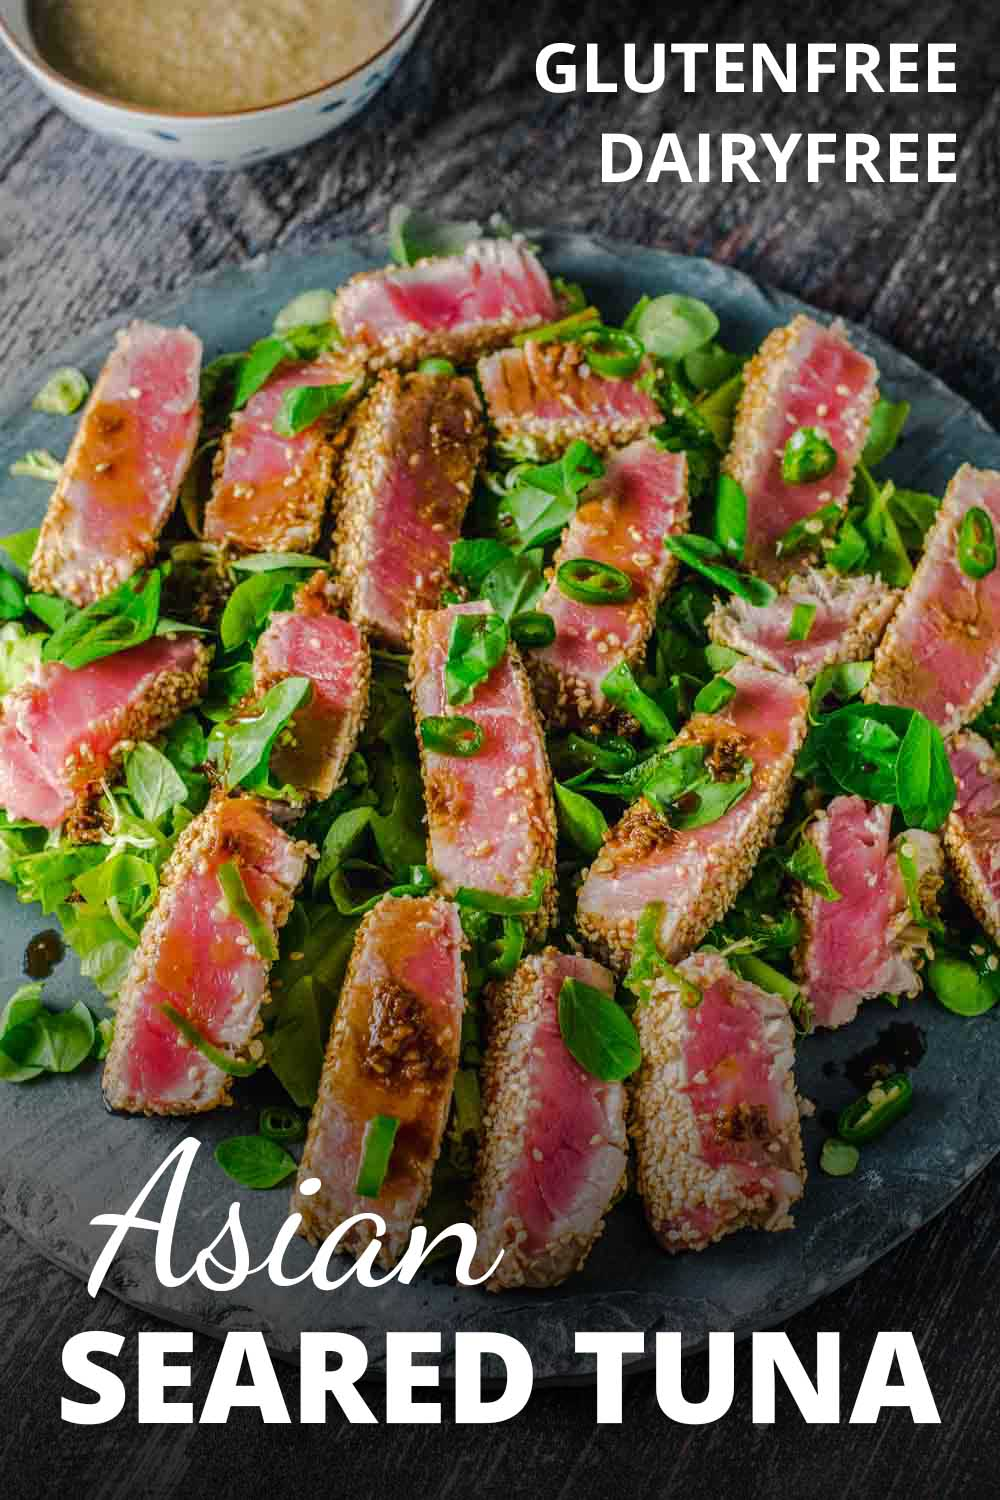 Asian seared tuna recipe